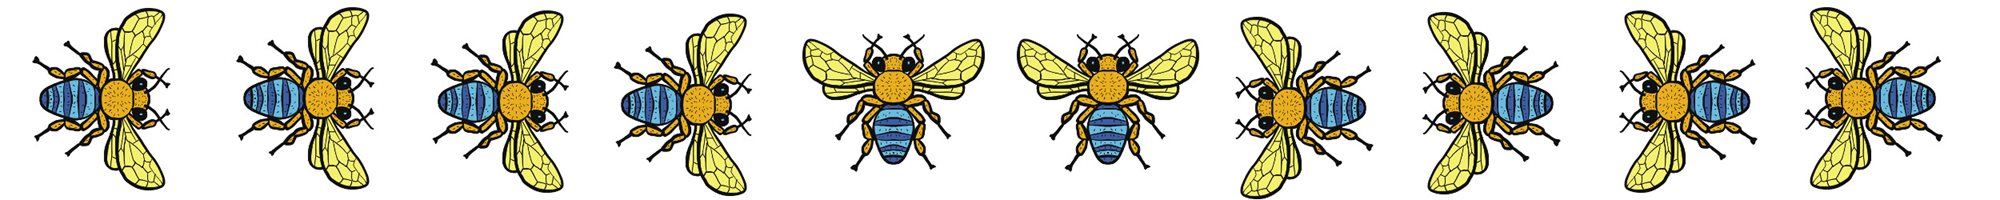 Cartoon strip of Blue Banded bees